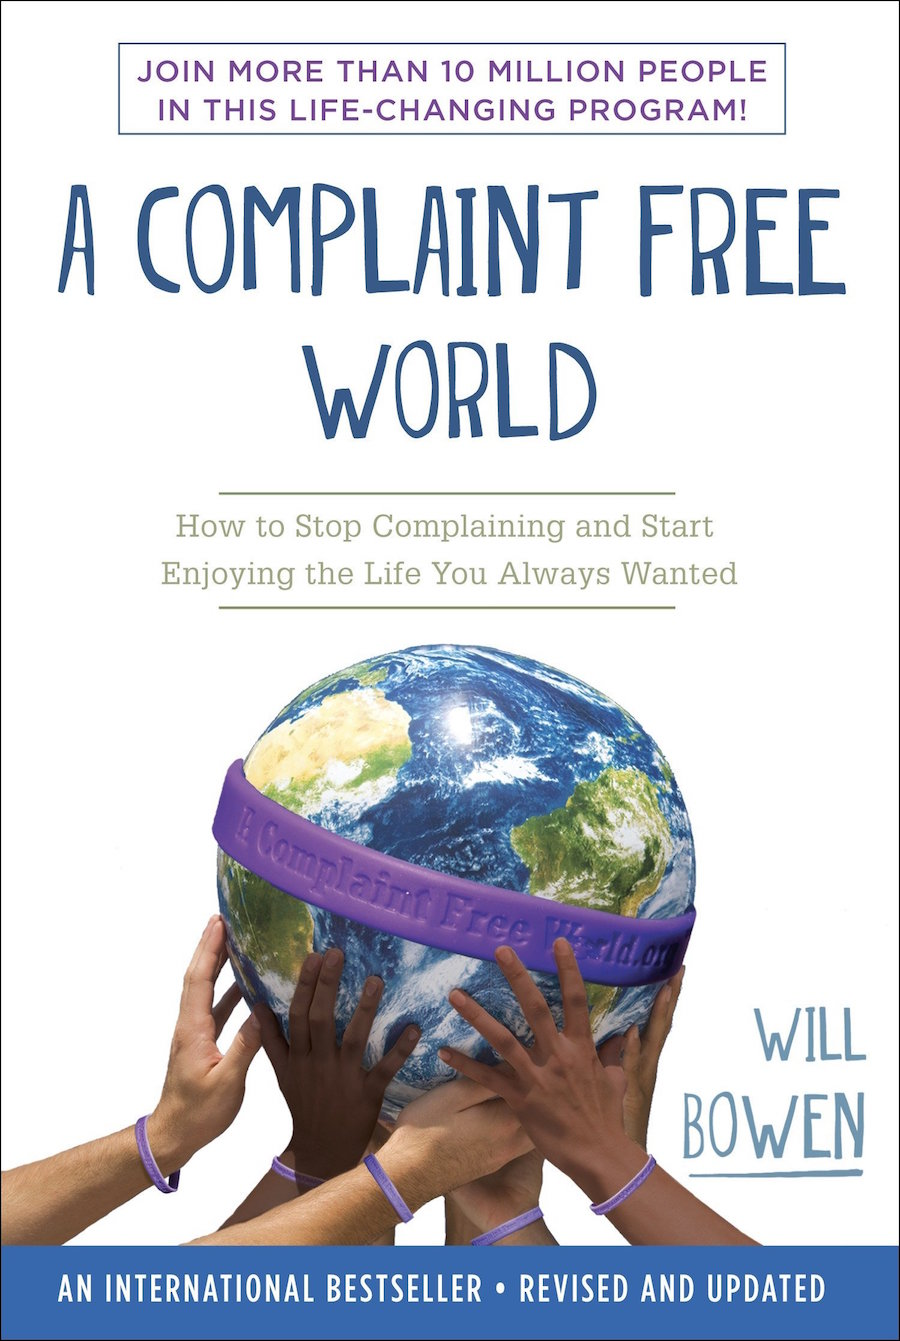 a complaint-free world - by Bill BowenA SIMPLE PLAN… A LIFE-CHANGING RESULT… A HAPPIER LIFE+ What exactly is a complaint? (Chapter 1)+ Why is complaining destructive? (Chapters 2-3)+ How can I get others around me to stop complaining? (Chapter 3)+ How can we affect social change if we don't complain? (Chapter 5)+ Why is it so hard to stop complaining? (Chapters 4-6)+ What happens once I no longer complain? (Chapter 8)You may have pondered these questions yourself. Since the Complaint Free program began, Will Bowen has received hundreds of calls, letters and emails asking these and other important questions. In A Complaint Free World: How to Stop Complaining and Start Enjoying the Life You Always Wanted, he provides practical answers and includes inspiring and touching stories from people just like you who have transformed their lives by becoming Complaint Free.Over 6 million people in more than 80 countries have taken the Complaint Free challenge and their lives are a testament to the positive effects of this simple idea. Find out how forming the simple habit of not complaining can transform your health, relationships, career and life.